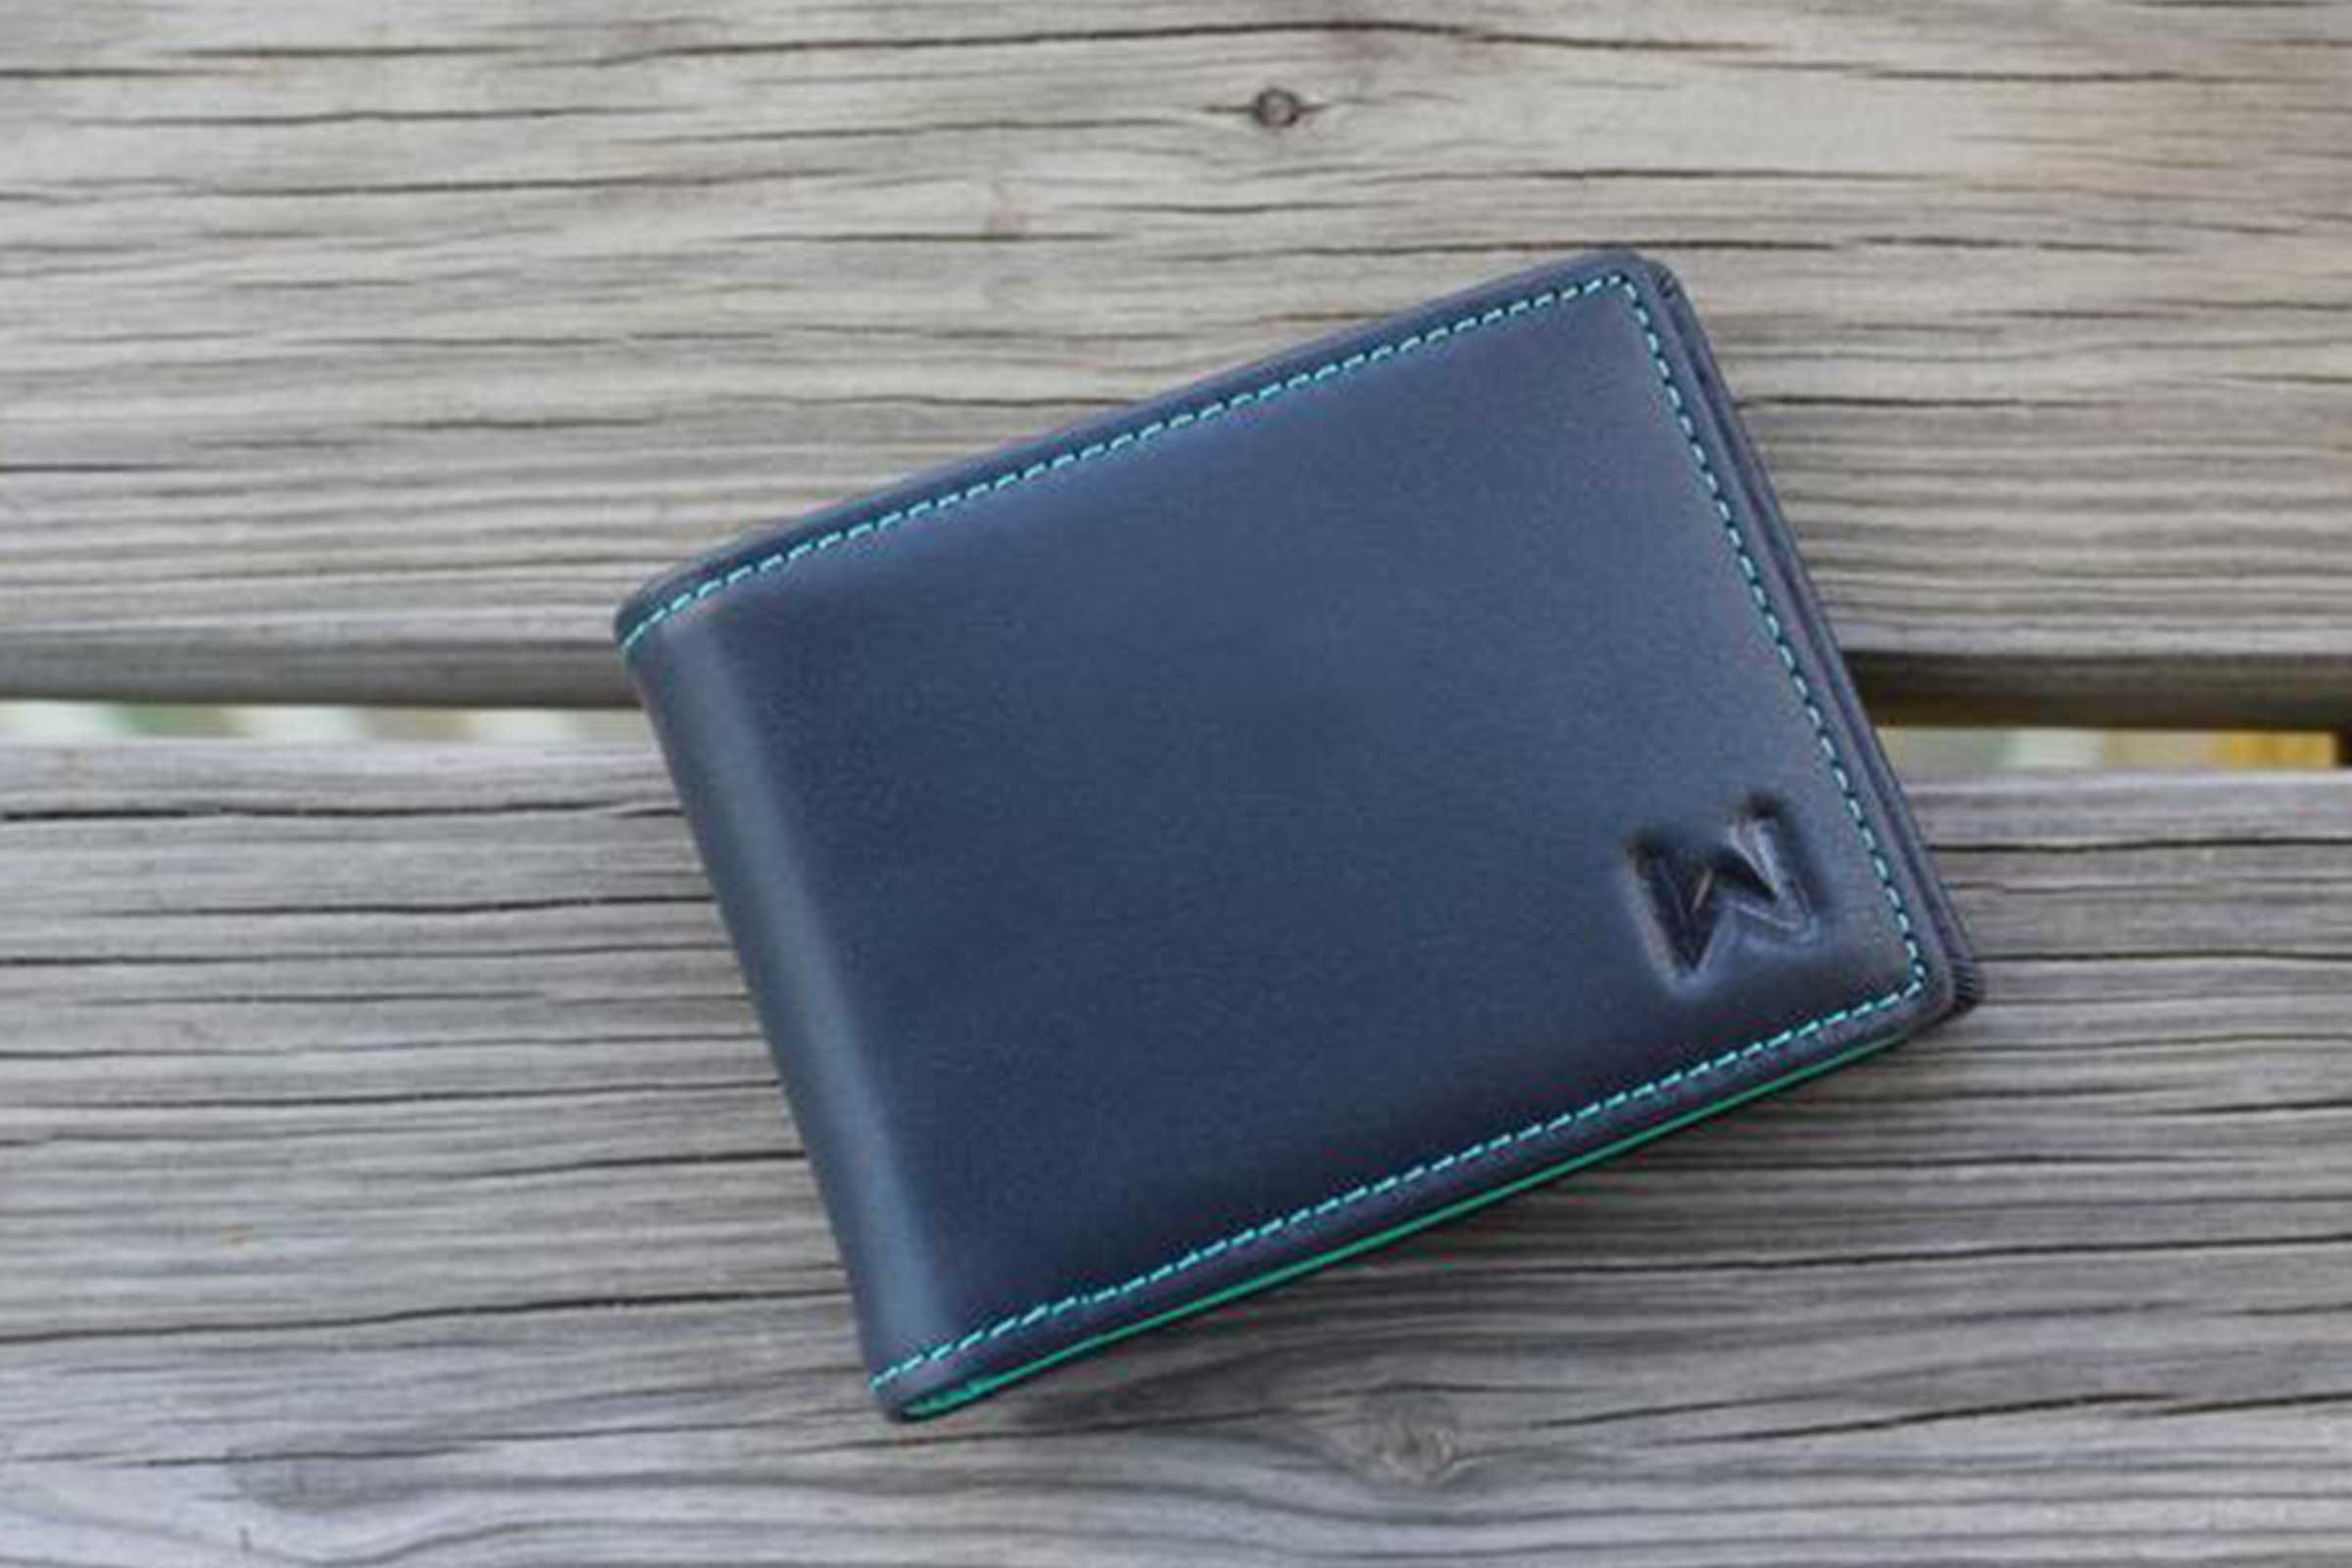 11_Everyday Smart Wallet by Walli Wearables